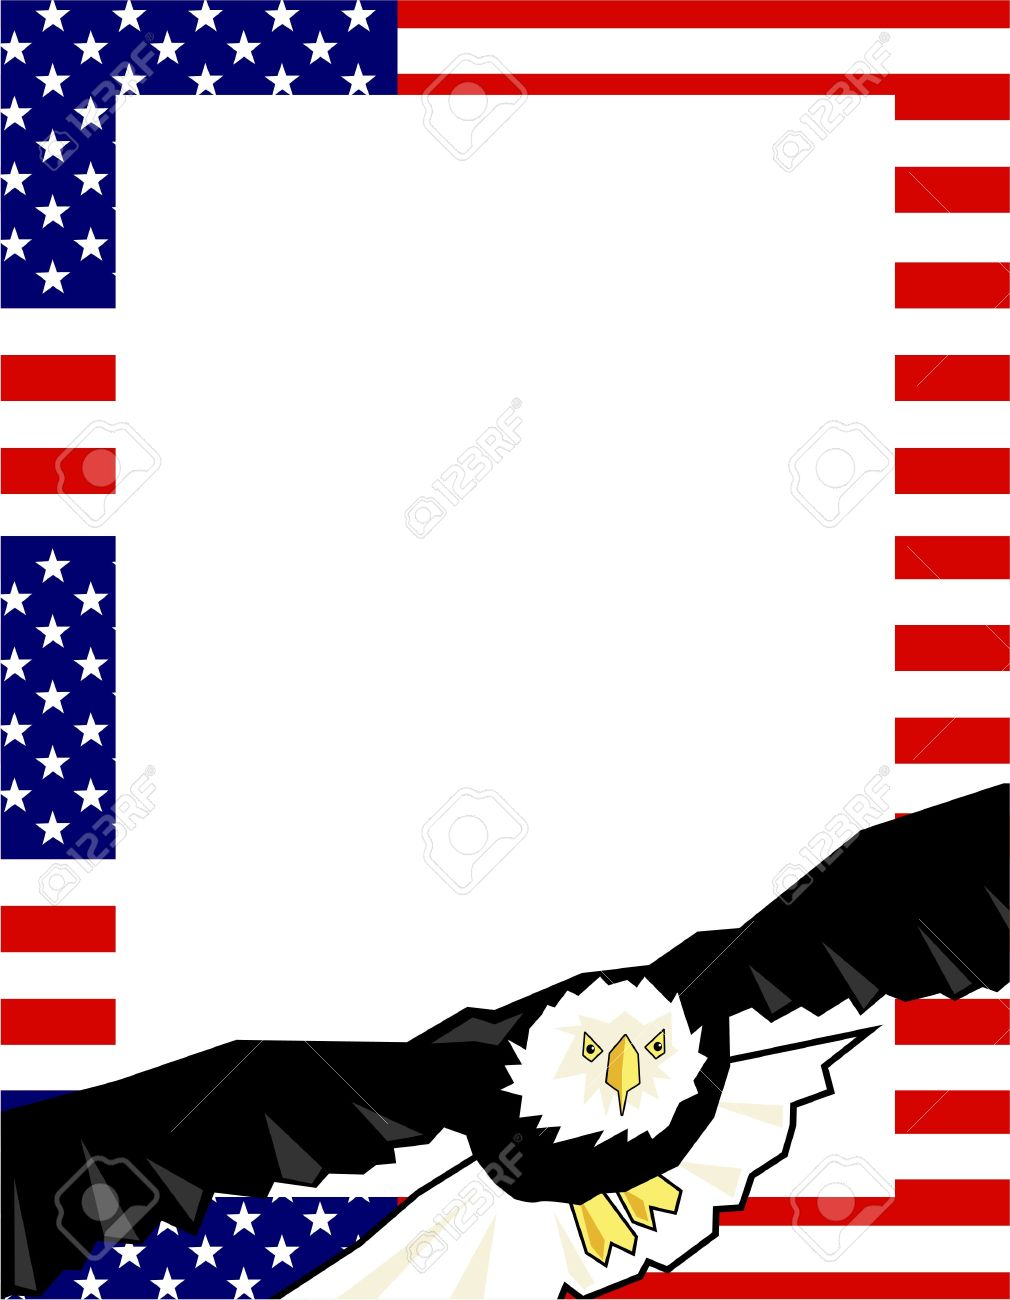 American Flag Border With Bald Eagle Stock Photo, Picture And ...